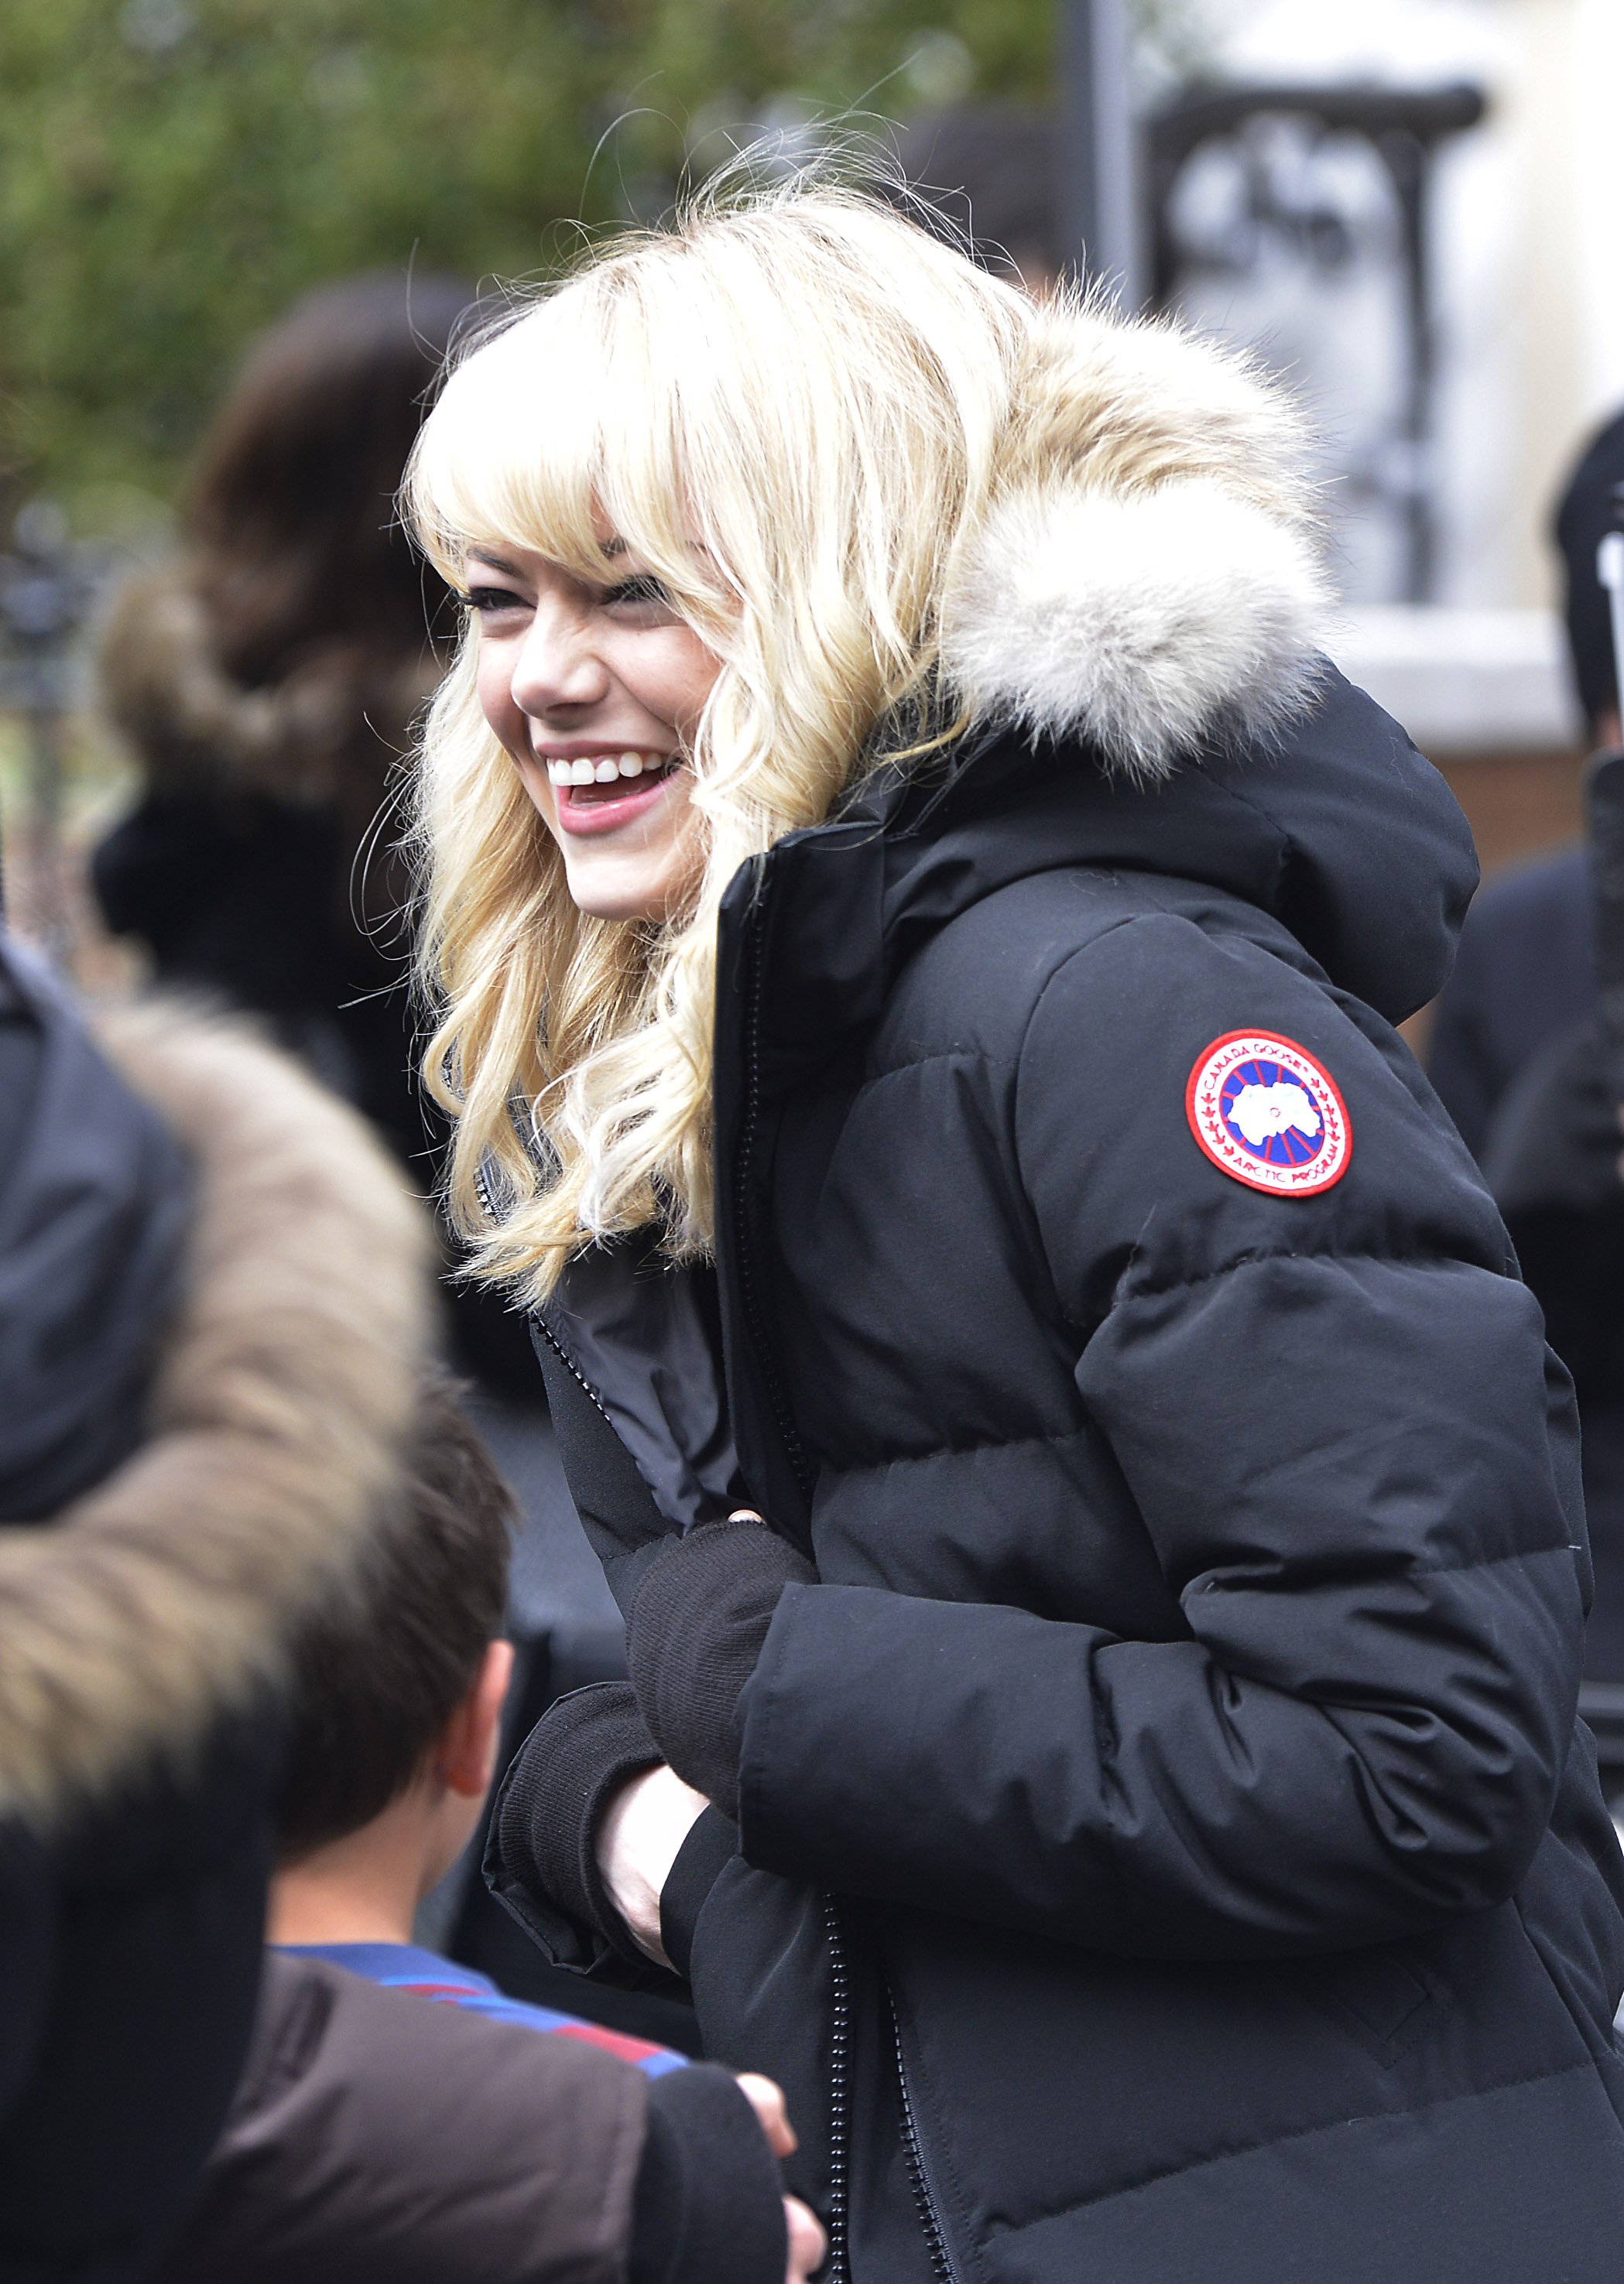 Emma Stone on the set of 'The Amazing Spiderman 2' in New York City.